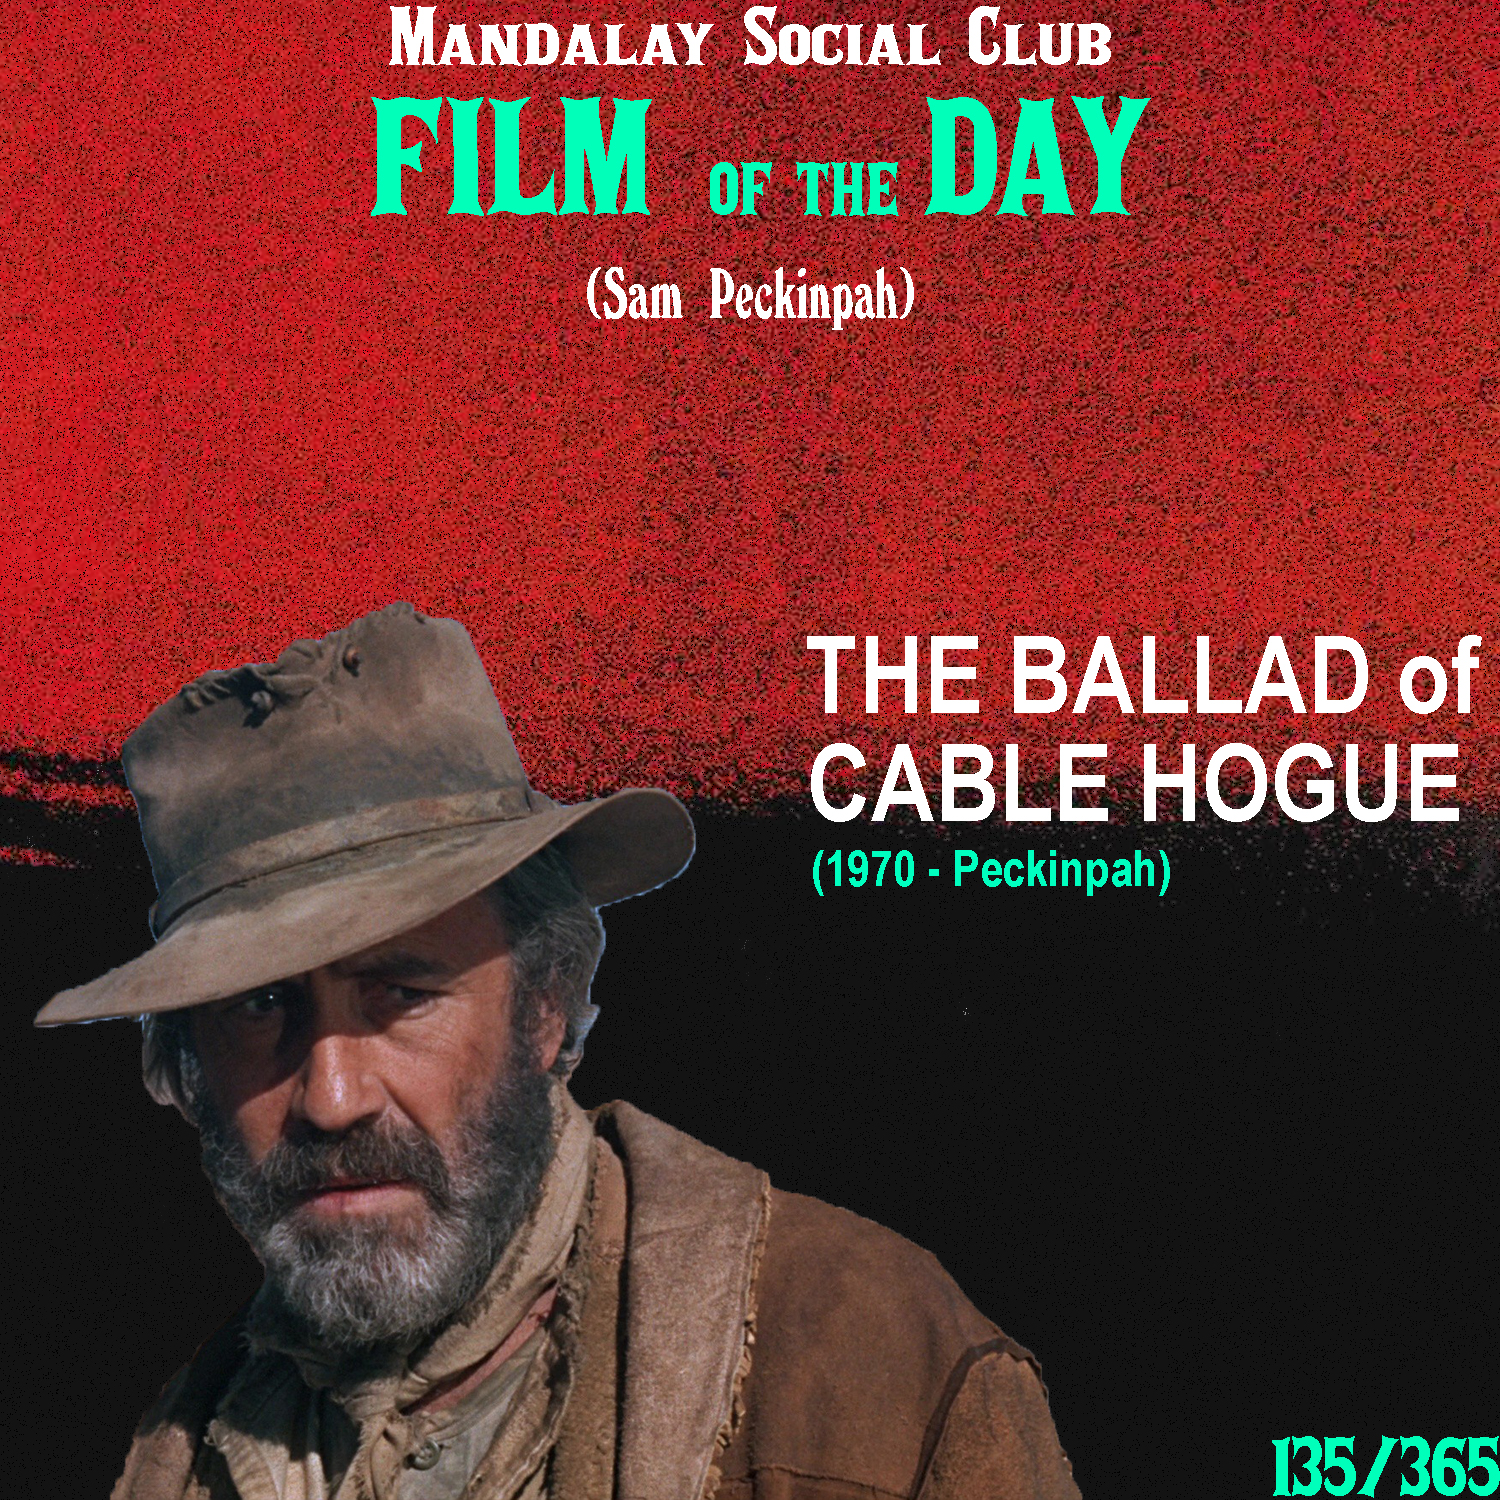 THE BALLAD OF CABLE HOGUE     (dir. Same Peckinpah)   Peckinpah took a slight detour from his typical modus operandi when he approached his follow up to  The Wild Bunch . Instead of attempting to top the violence he photographed in  The Wild Bunch , he opted for a more characterized film that ignores a lot of the conventions associated with Westerns. The result was  The Ballad of Cable Hogue !  Jason Robards stars as the titular character. Cable Hogue is alone in the desert after his two partners venture off to find water. When they come back empty handed, they rob Cable of the last bit of his water and leave him to the desert where he'll meet his almost certain death. After five days of prayer and wandering, Cable stumbles upon a little bit of water that saves his life. He then goes on to buy the land the water was on and he creates a water station for any travelers passing through.  Like I said,  Cable Hogue  ignores a lot of the Western conventions like violence and gunplay, and instead, Peckinpah creates a more comedically driven film that doesn't involve much violence at all.  Cable Hogue  plays out like a symbolic tale of the immigrant's American dream. Hogue's inability to read as well as his lack of funds place him at the bottom of the food chain without many options. However, with his intense passion and drive to make a better life for himself, he's able to beat the odds.    4.5/5     WATCH: Putlocker (FREE)